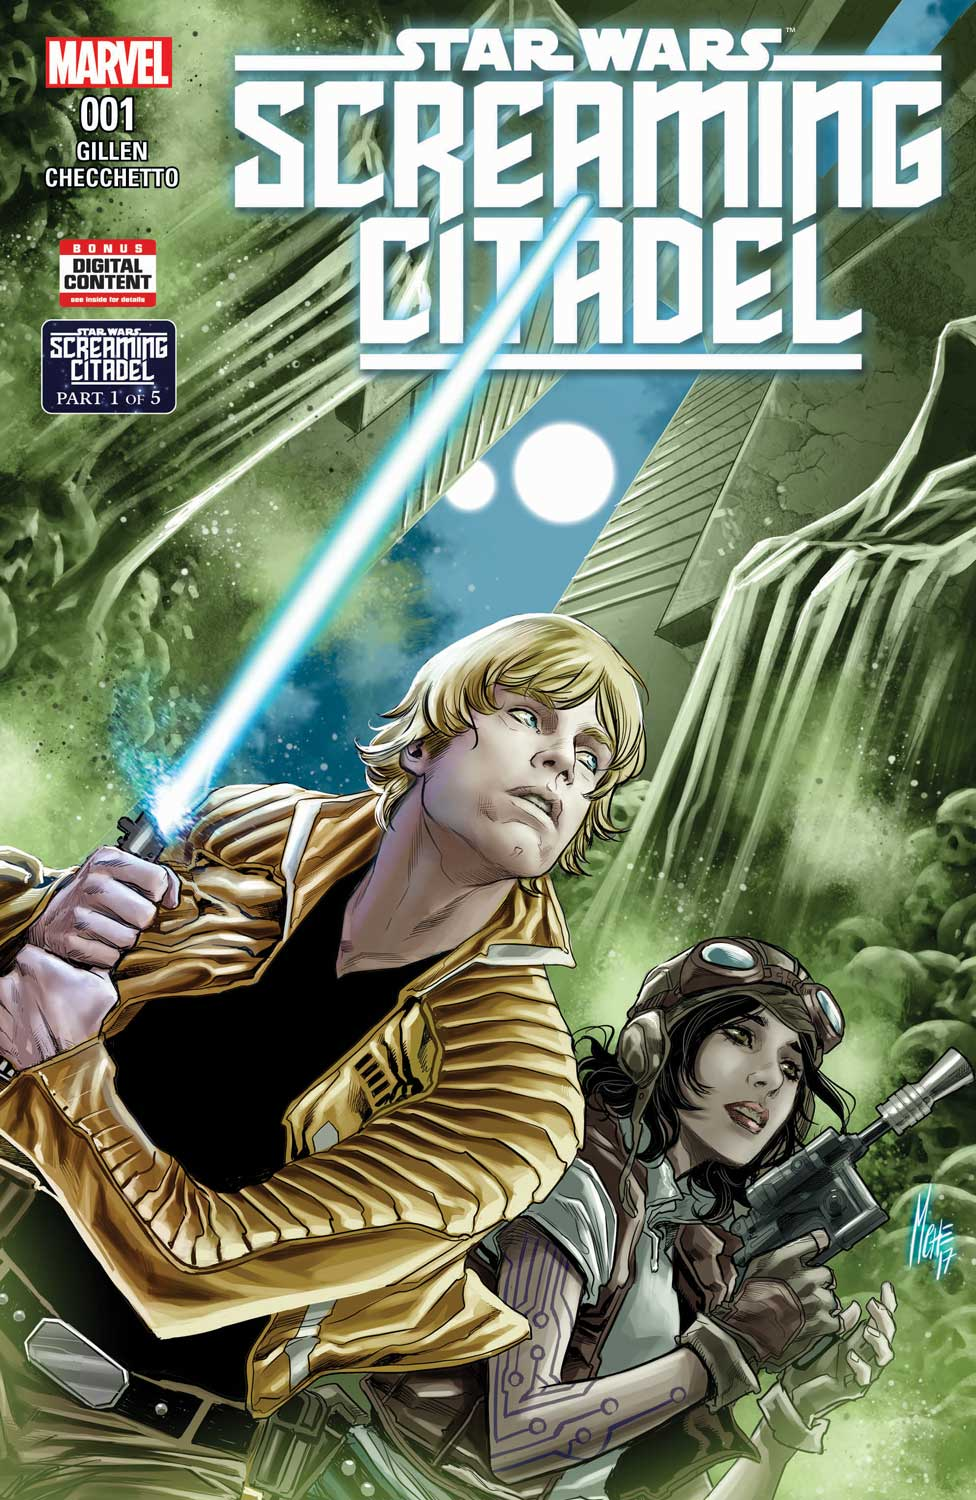 STAR WARS: THE SCREAMING CITADEL – A New Five-Part  Crossover Beginning This May!